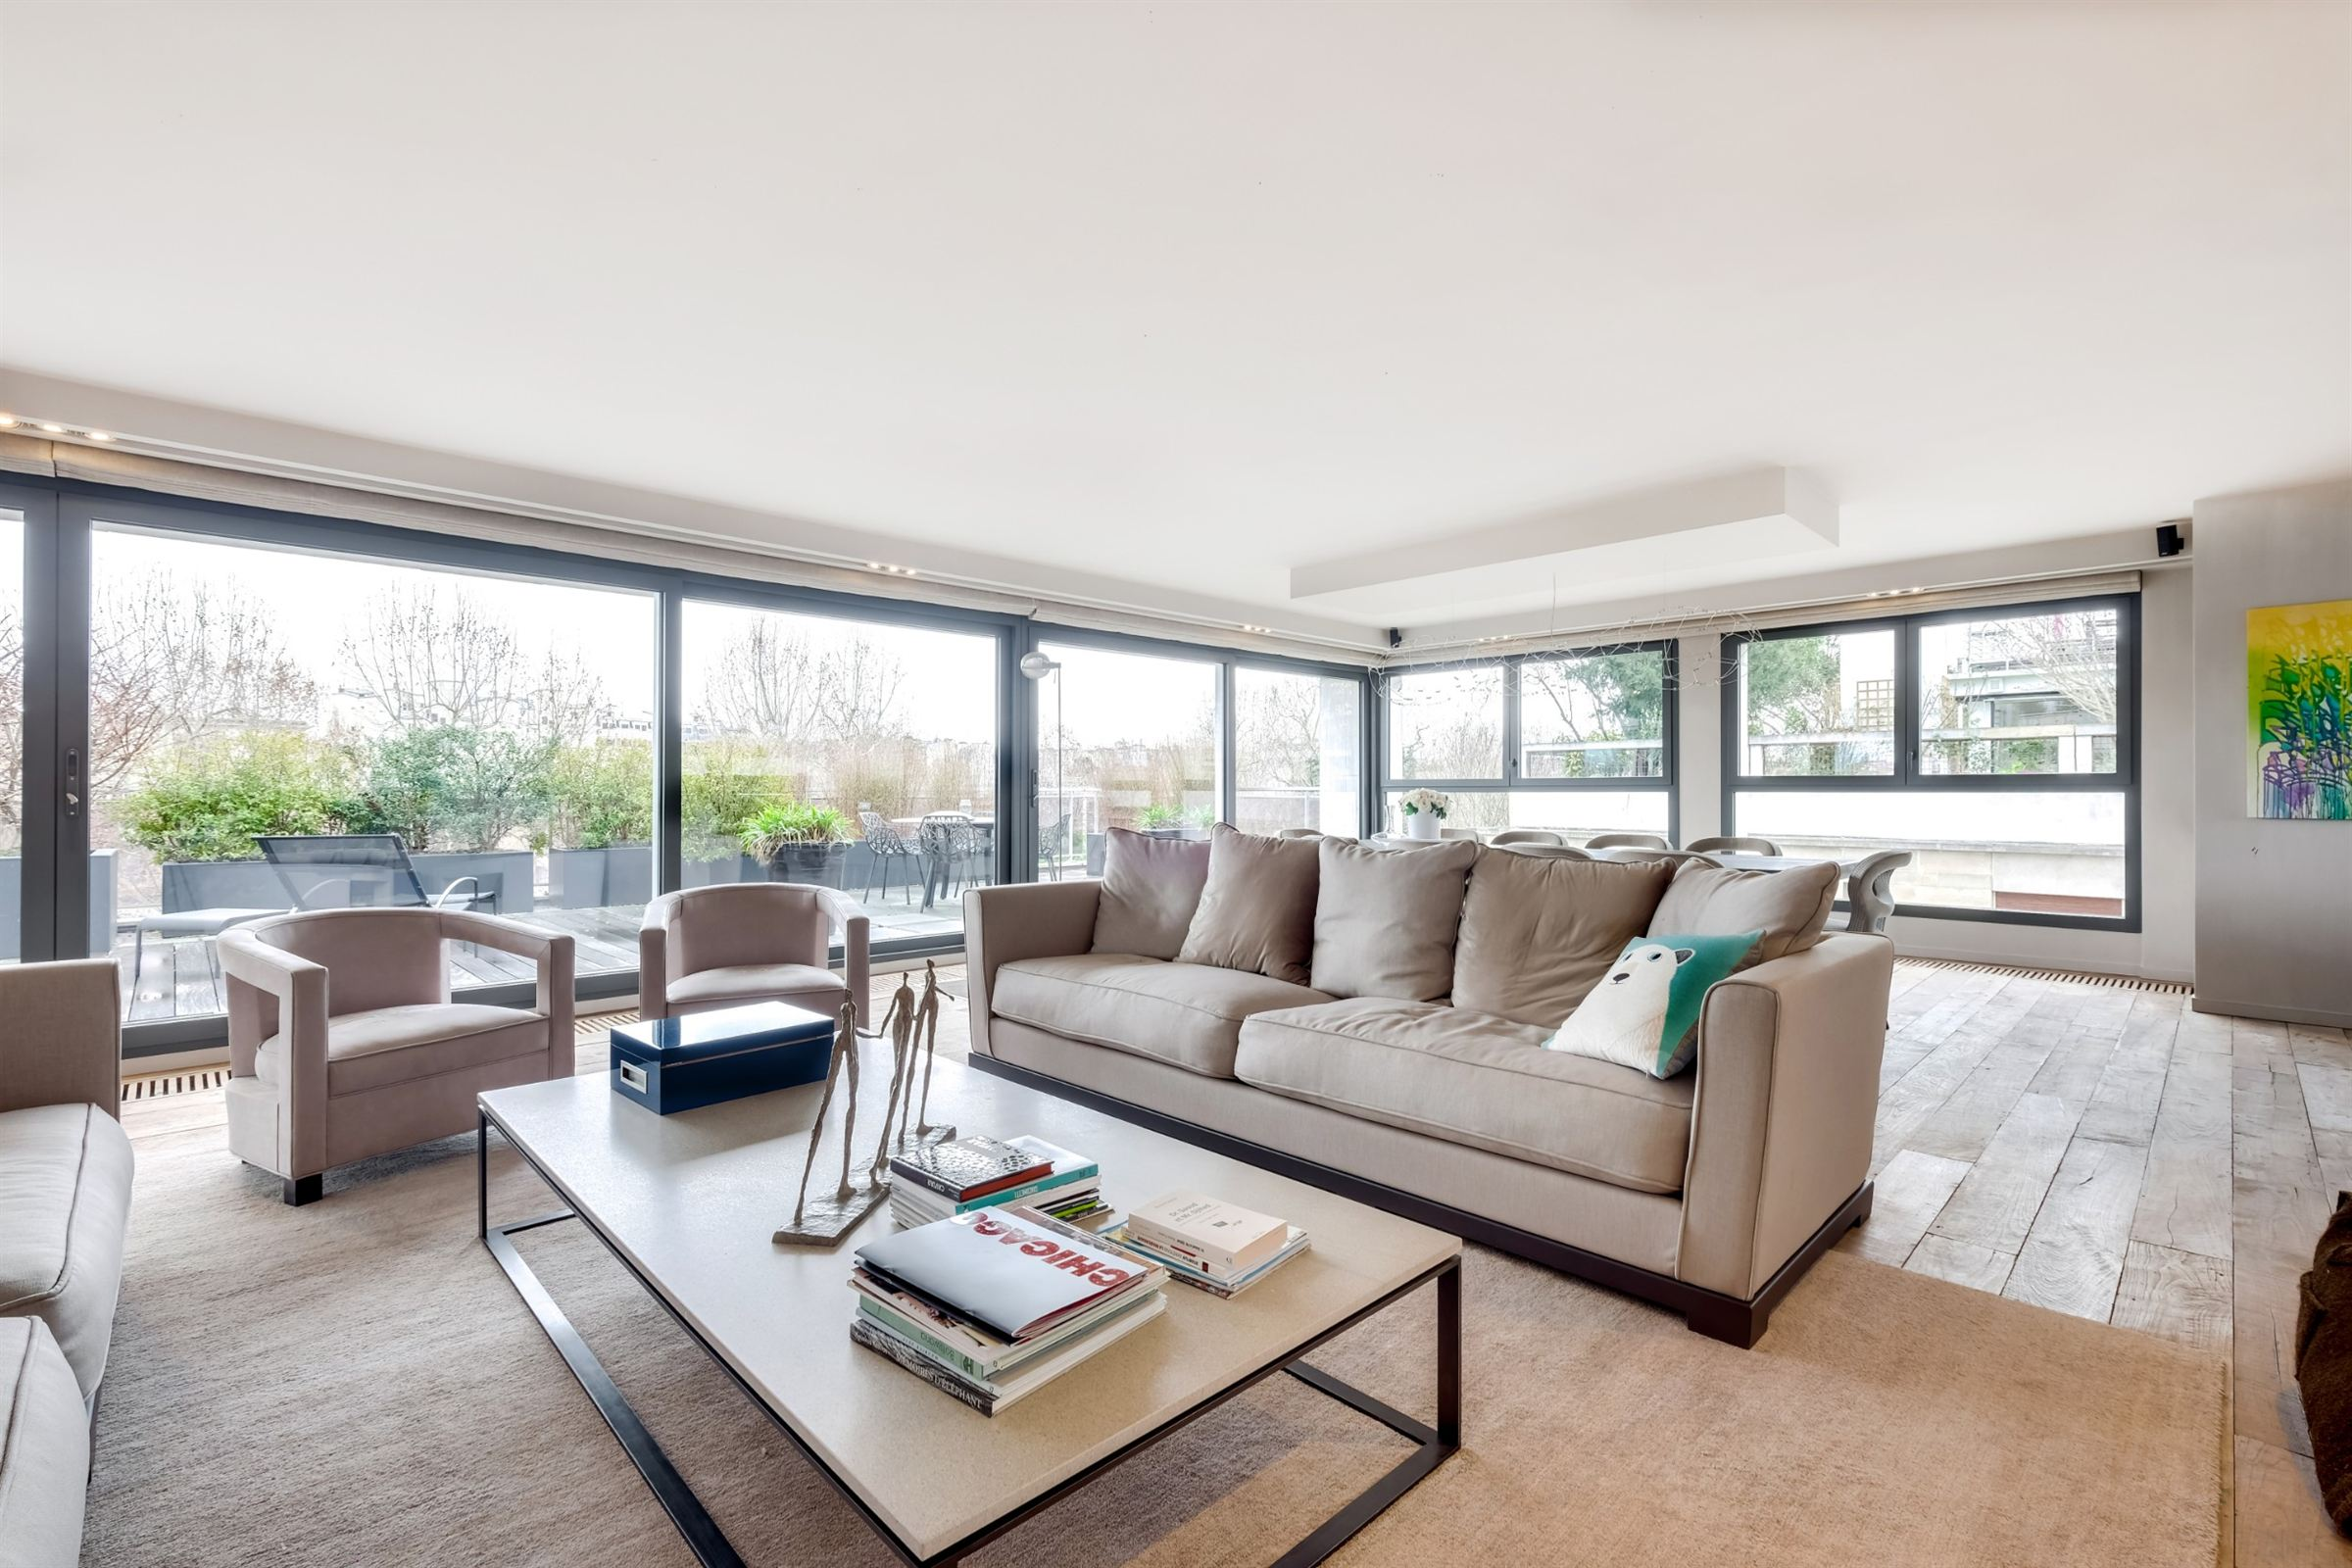 Condominium for sale in , NEUILLY SUR SEINE, Île-de-France ,92200  , France